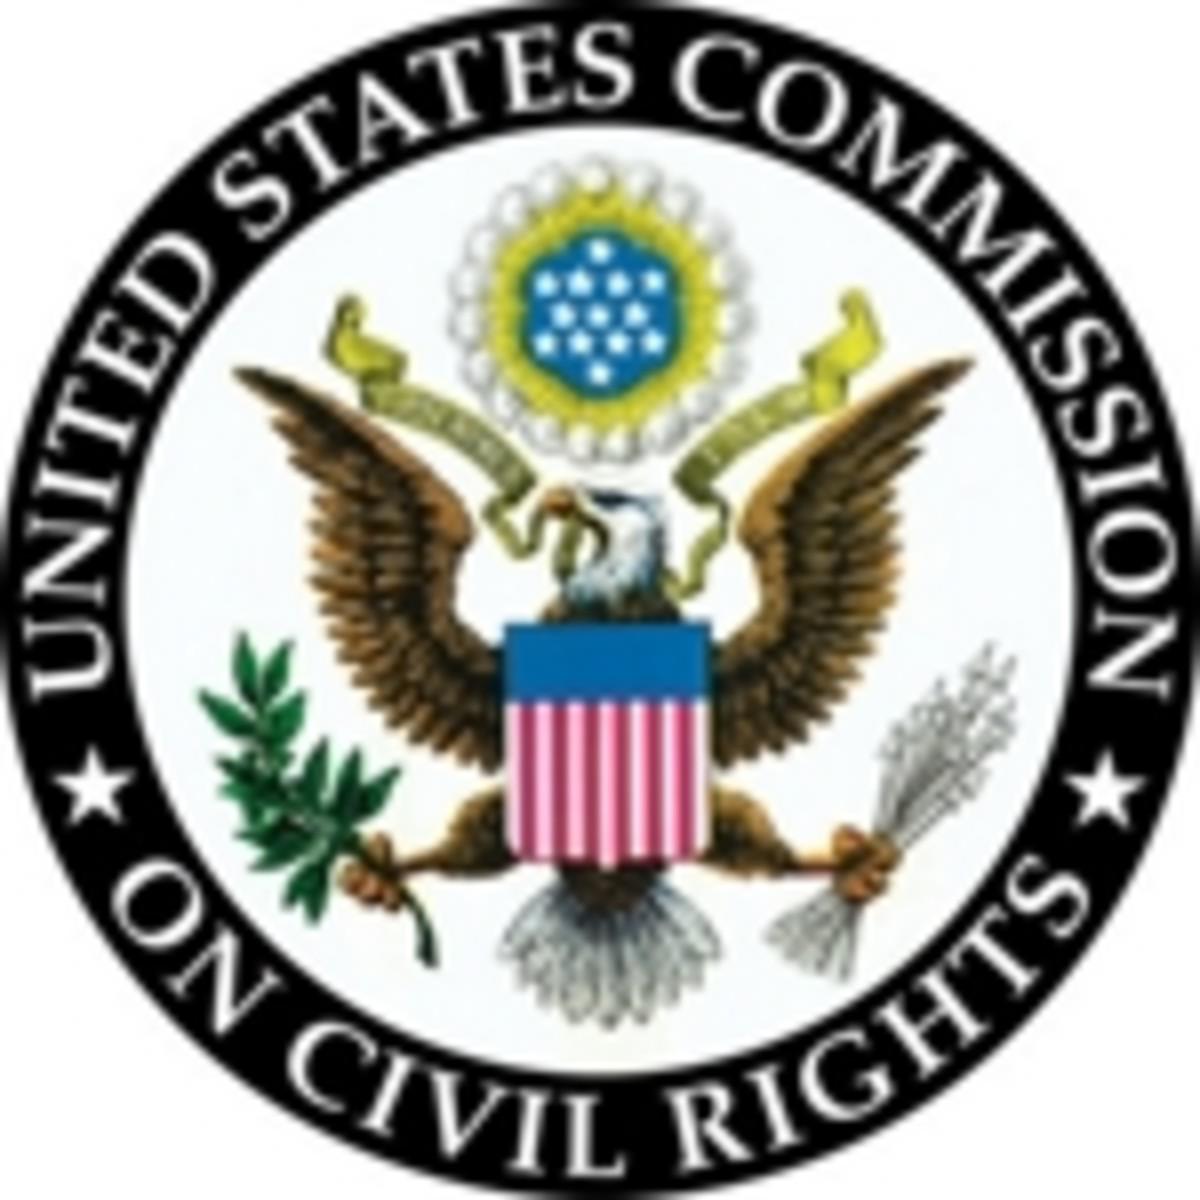 United States Commission on Civil Rights - logo